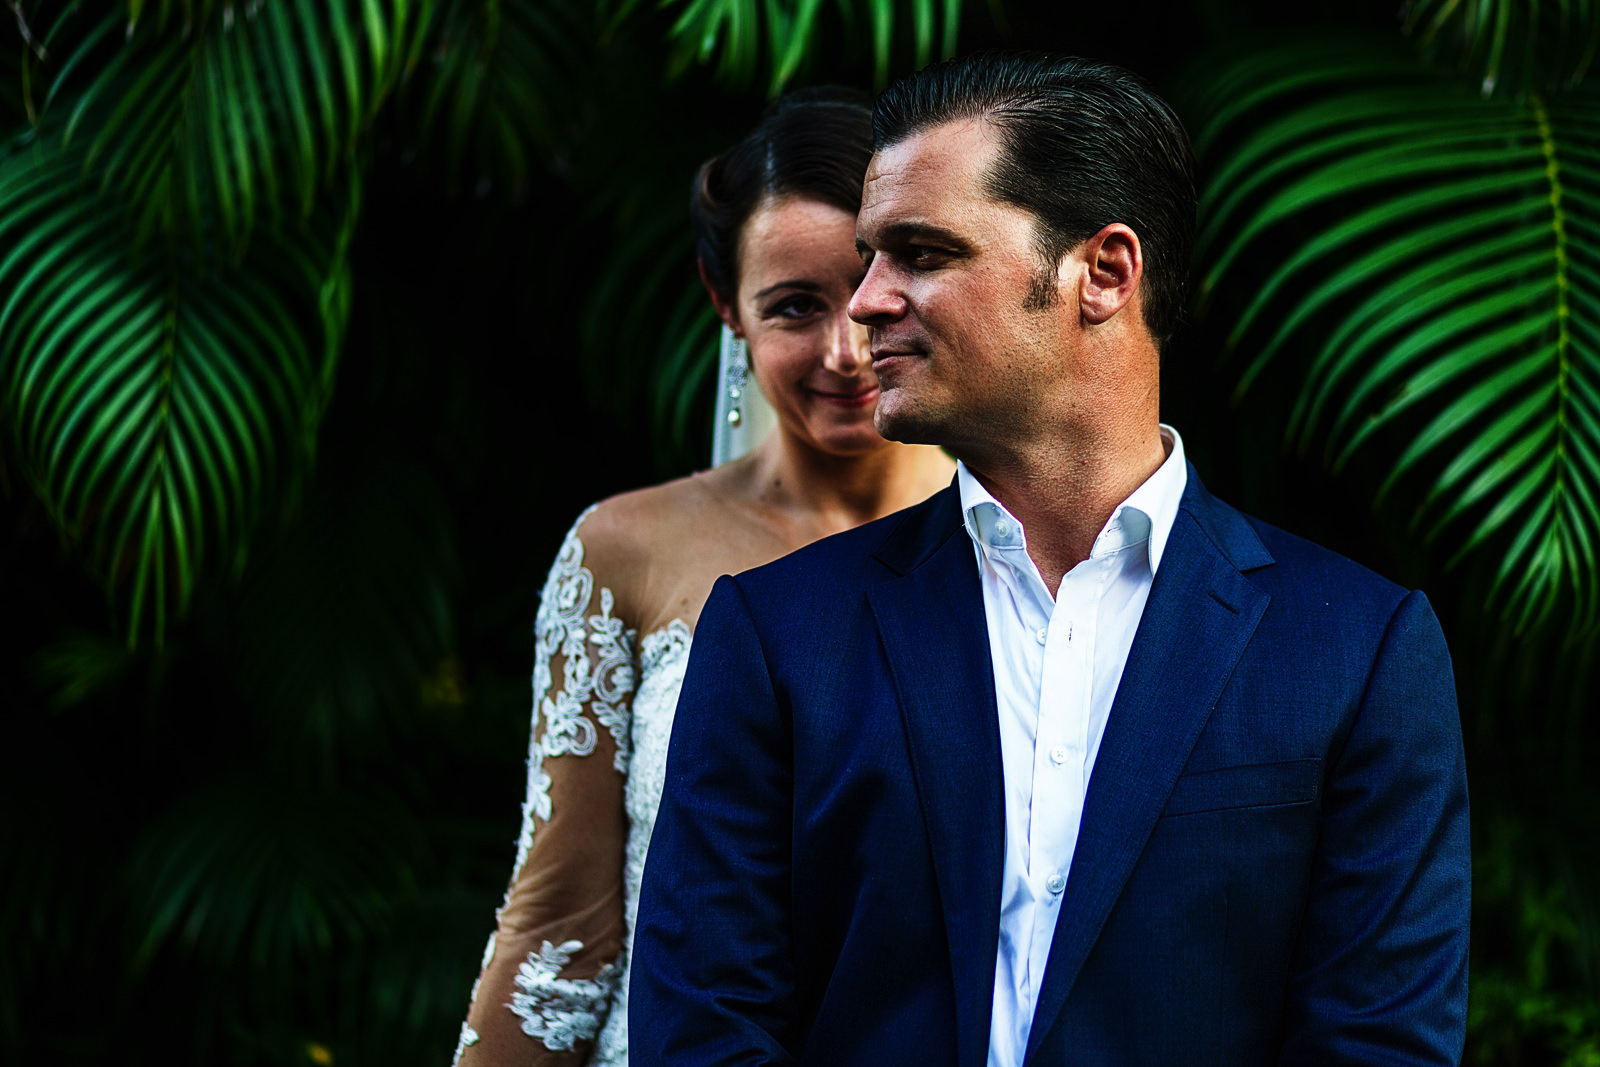 Portrait of the couple standing in front of palm leaves, bride behind the groom